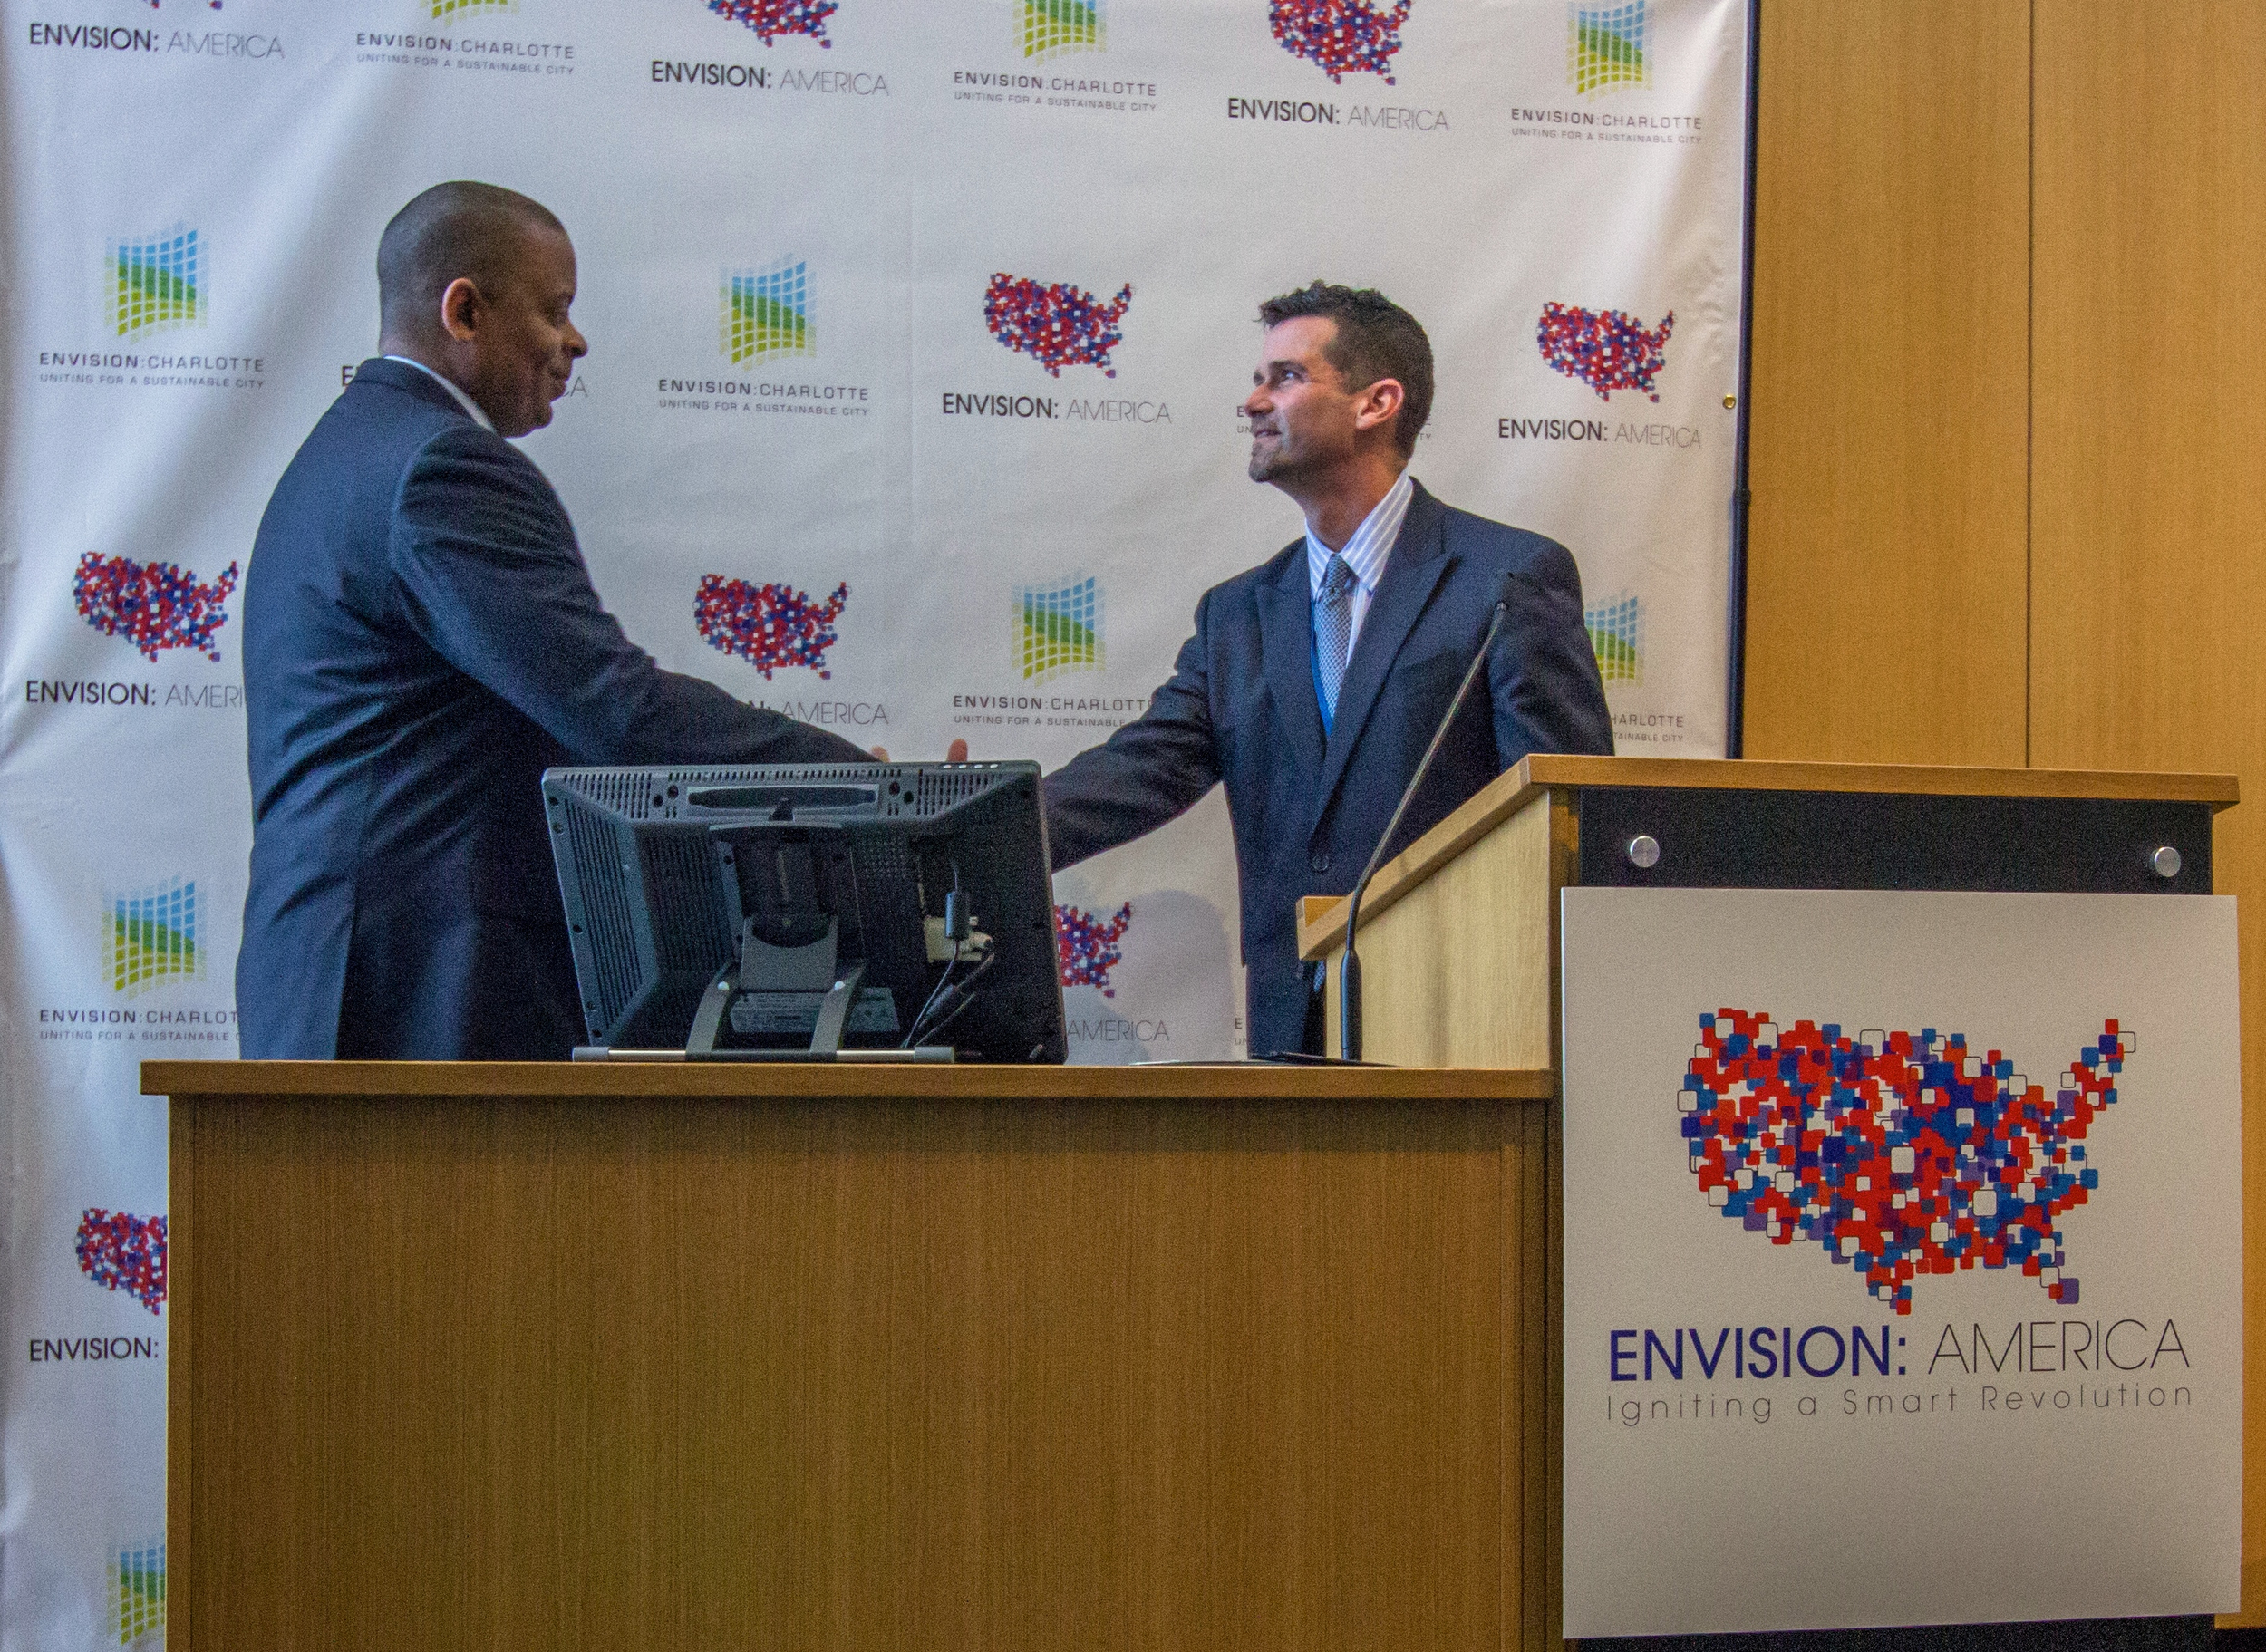 SOLID Principal Tracy Russ introduces US Transportation Secretary Anthony Foxx on day three of Envision America